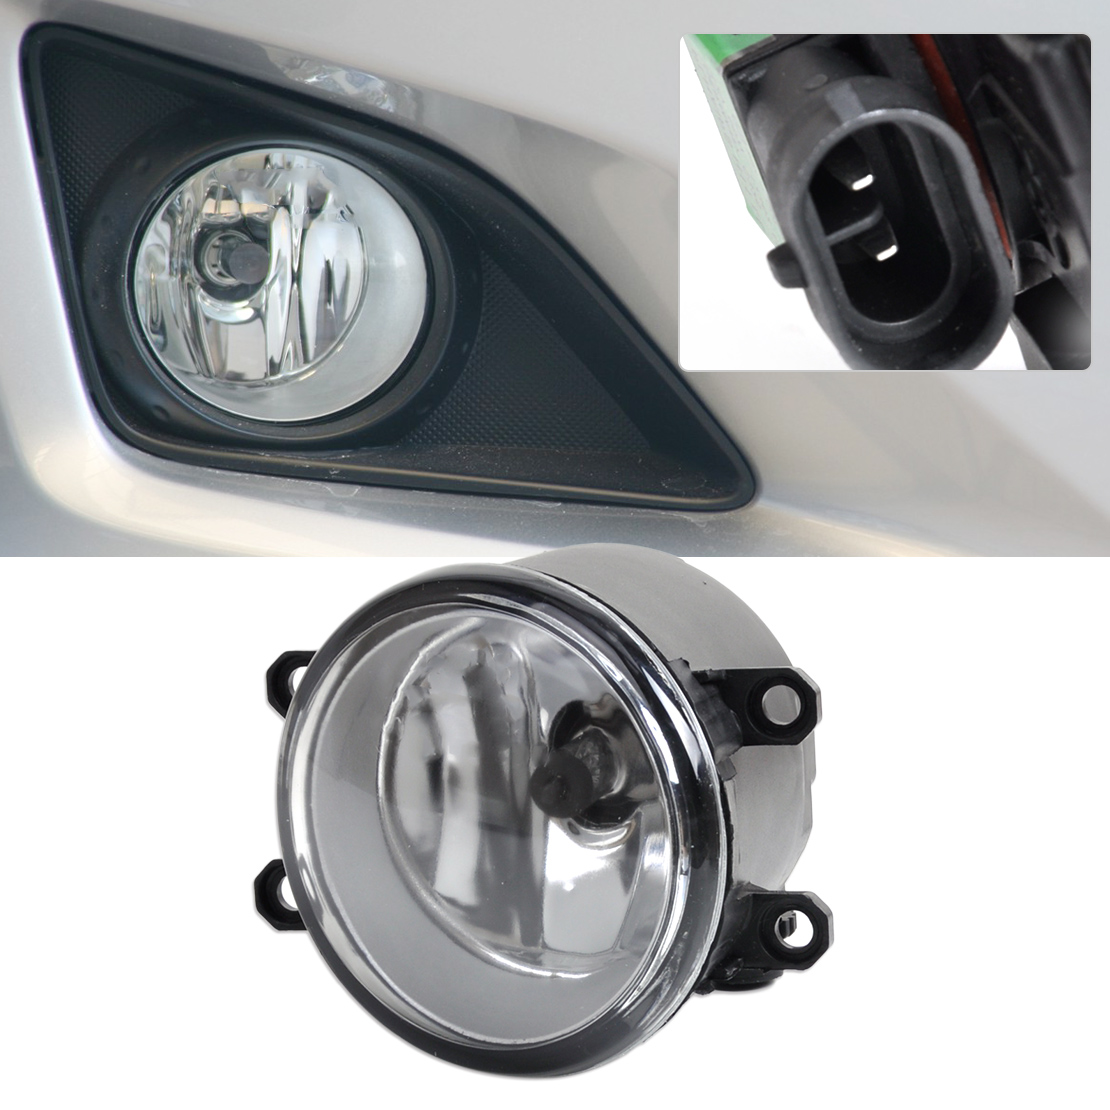 DWCX 81210-0D040 Fog light Lamp Right Side for Toyota Camry Corolla Yaris for Lexus GS350 GS450h LX570 HS250h IS-F LX570 RX450h(China (Mainland))